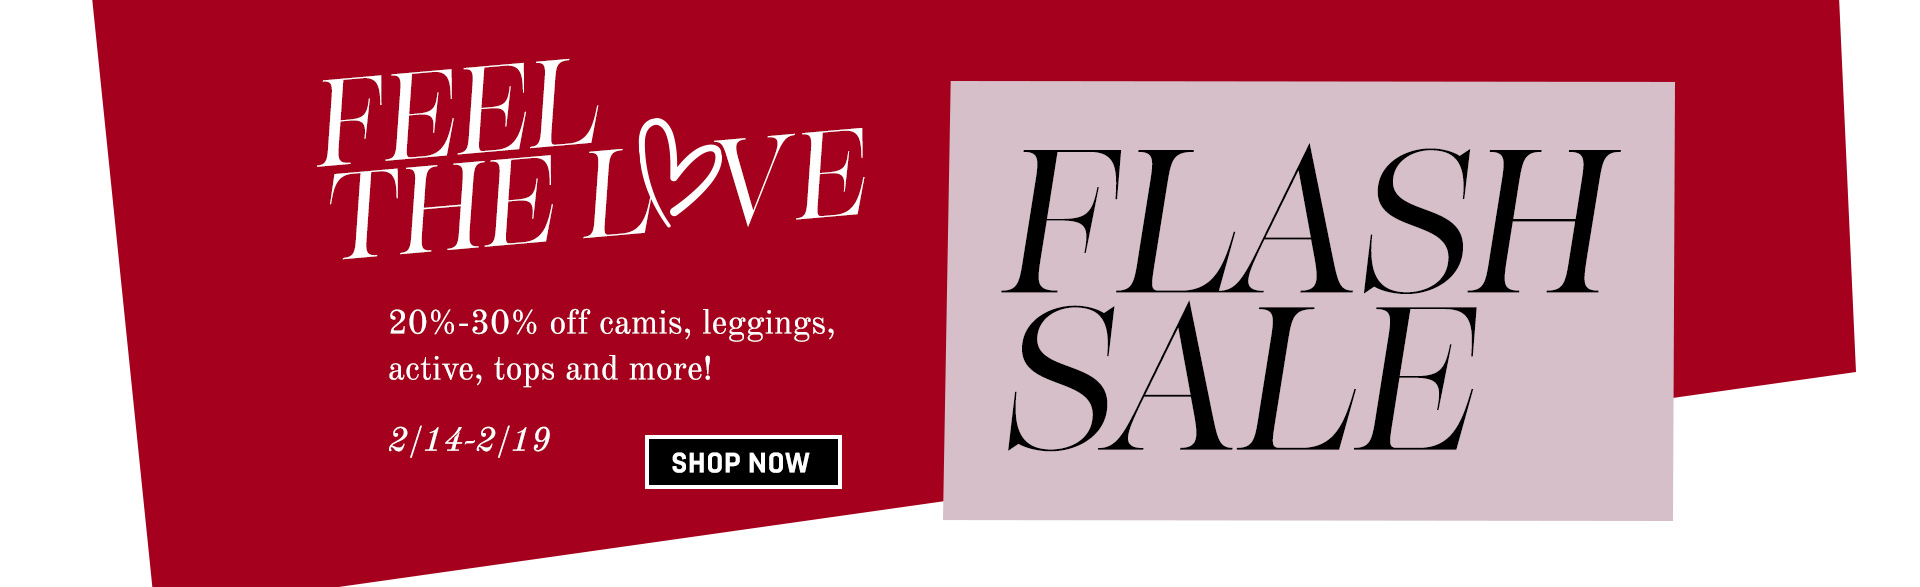 Feel the Love Flash Sale